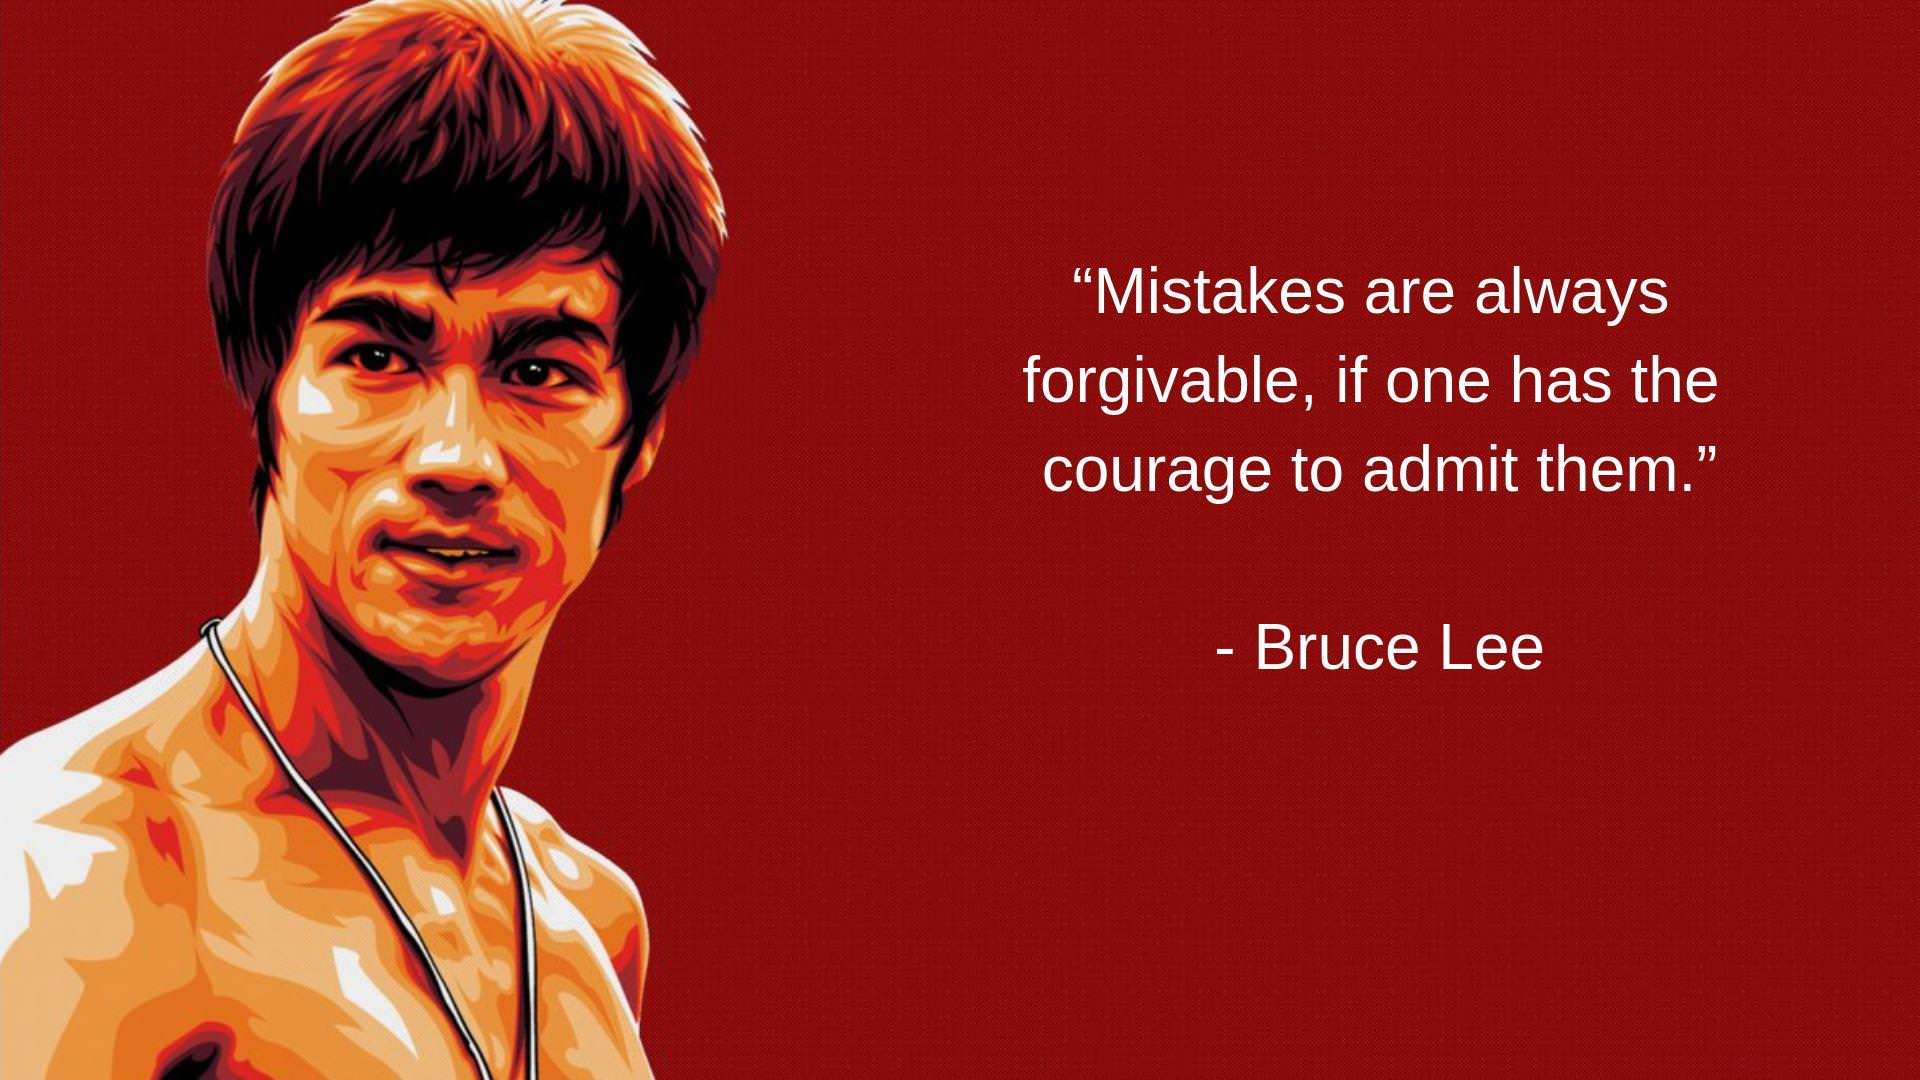 [Image] Mistakes are always forgivable